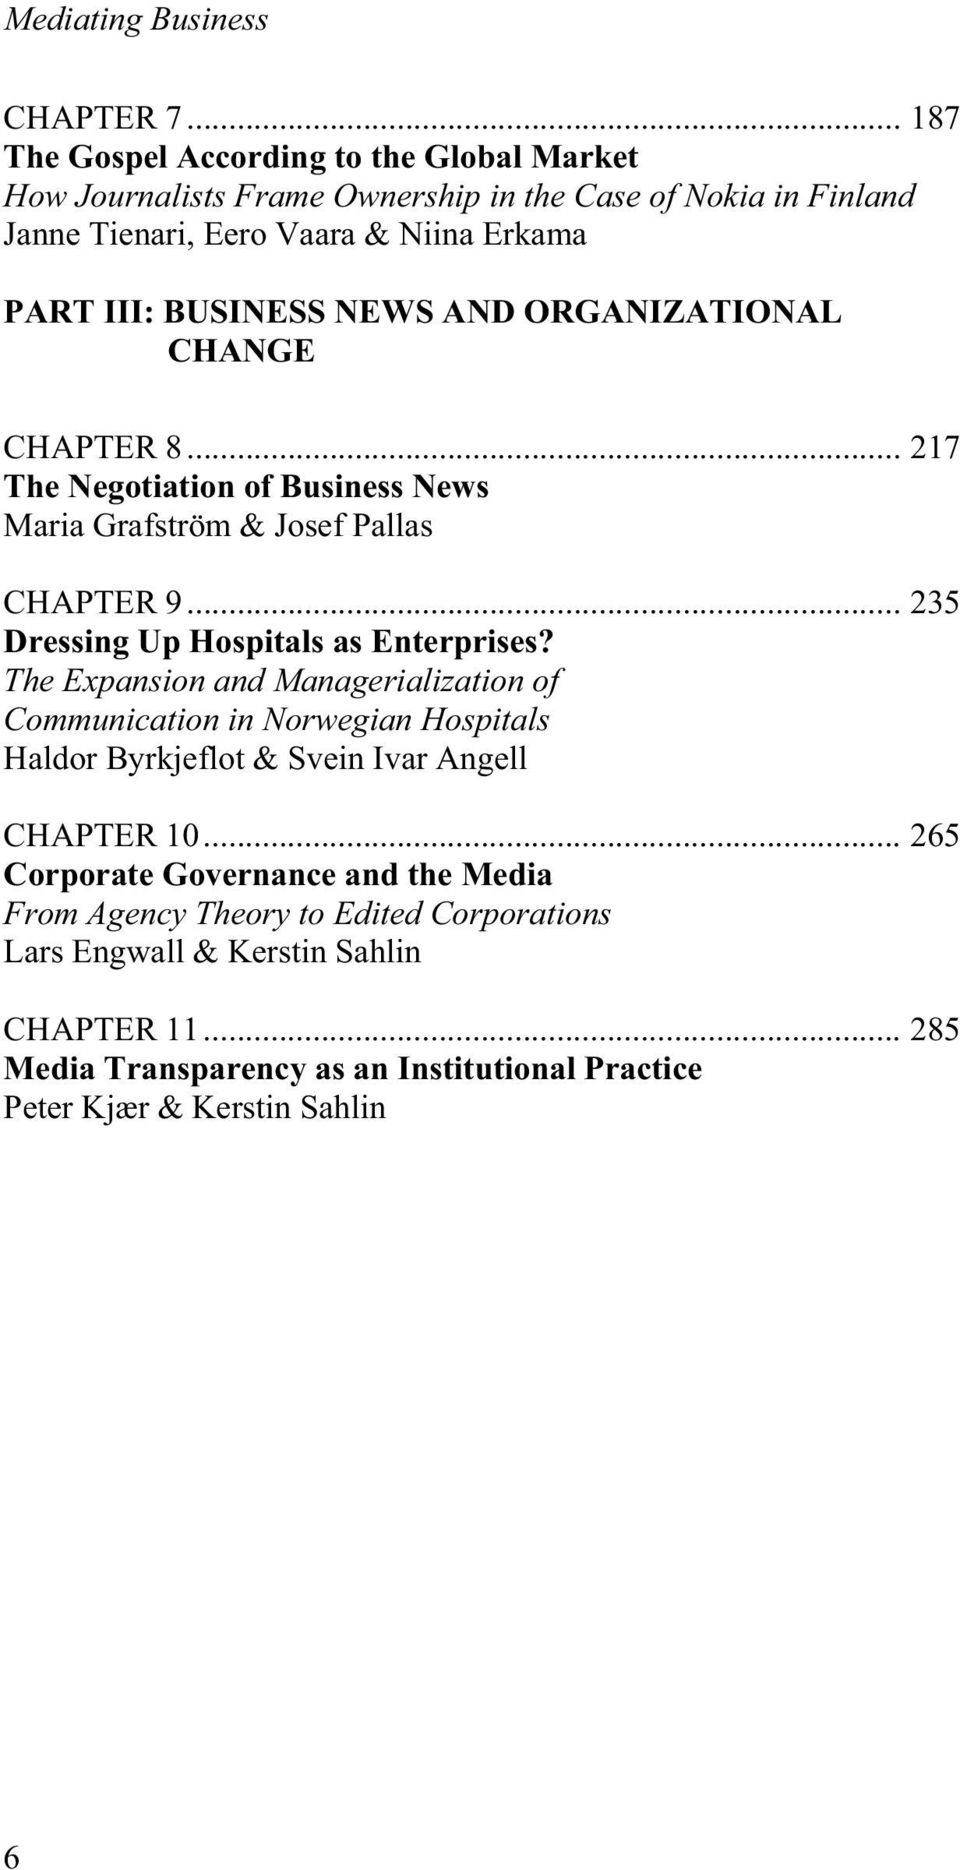 NEWS AND ORGANIZATIONAL CHANGE CHAPTER 8... 217 The Negotiation of Business News Maria Grafström & Josef Pallas CHAPTER 9... 235 Dressing Up Hospitals as Enterprises?